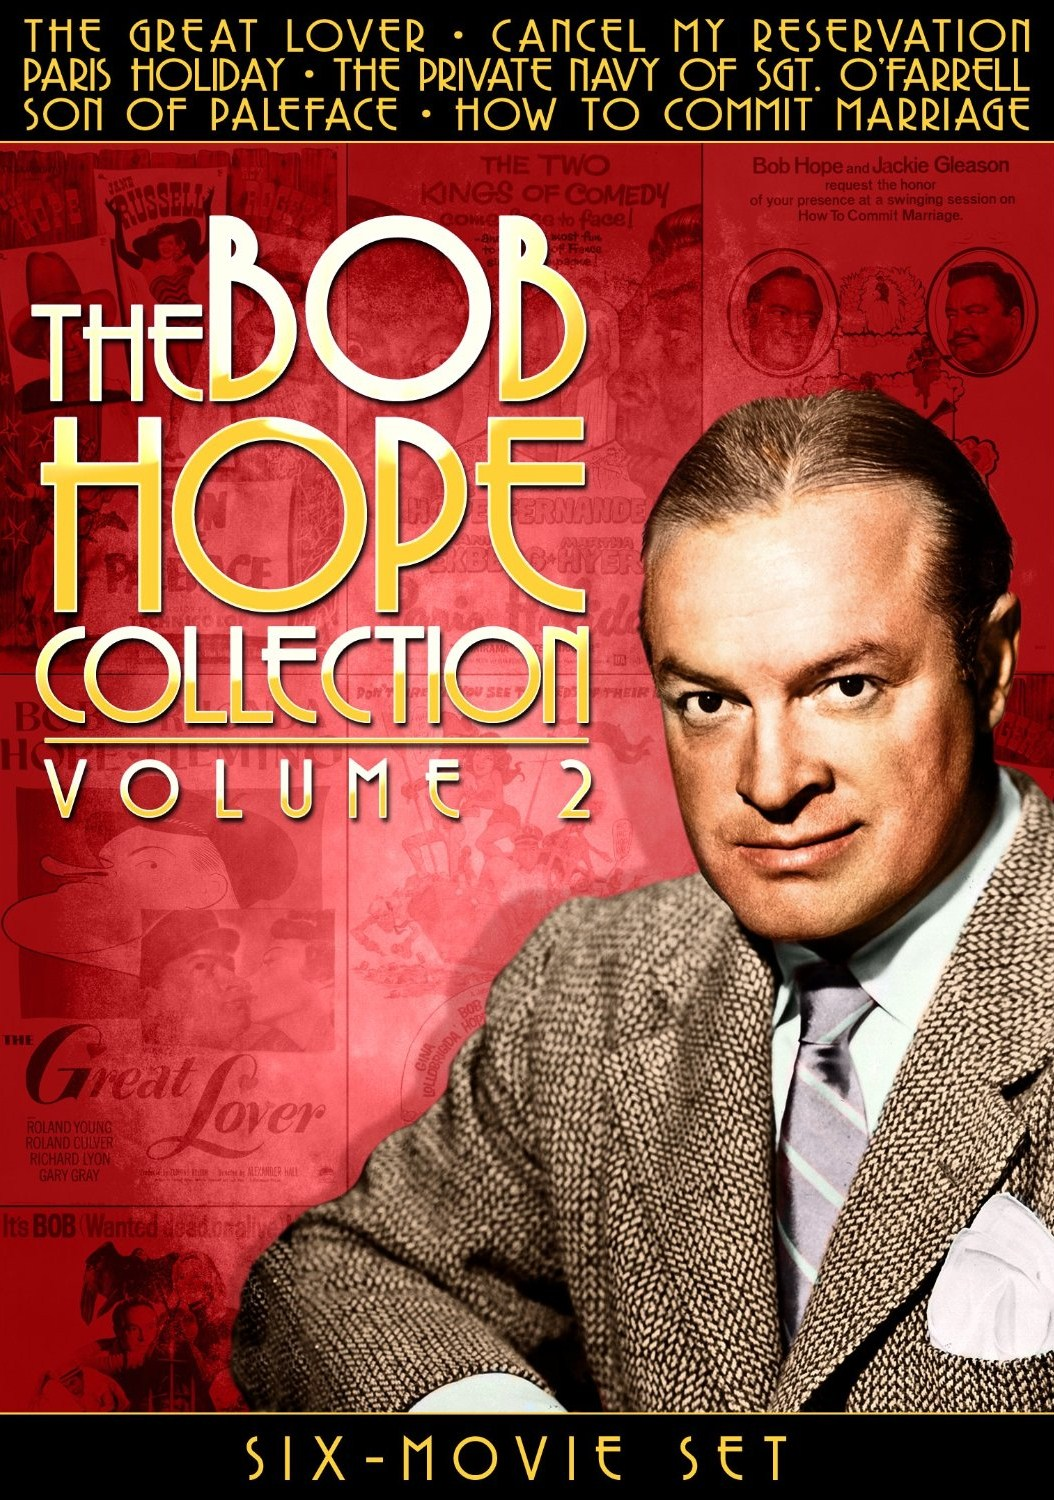 The Bob Hope Collection – Volume 2 DVD Review